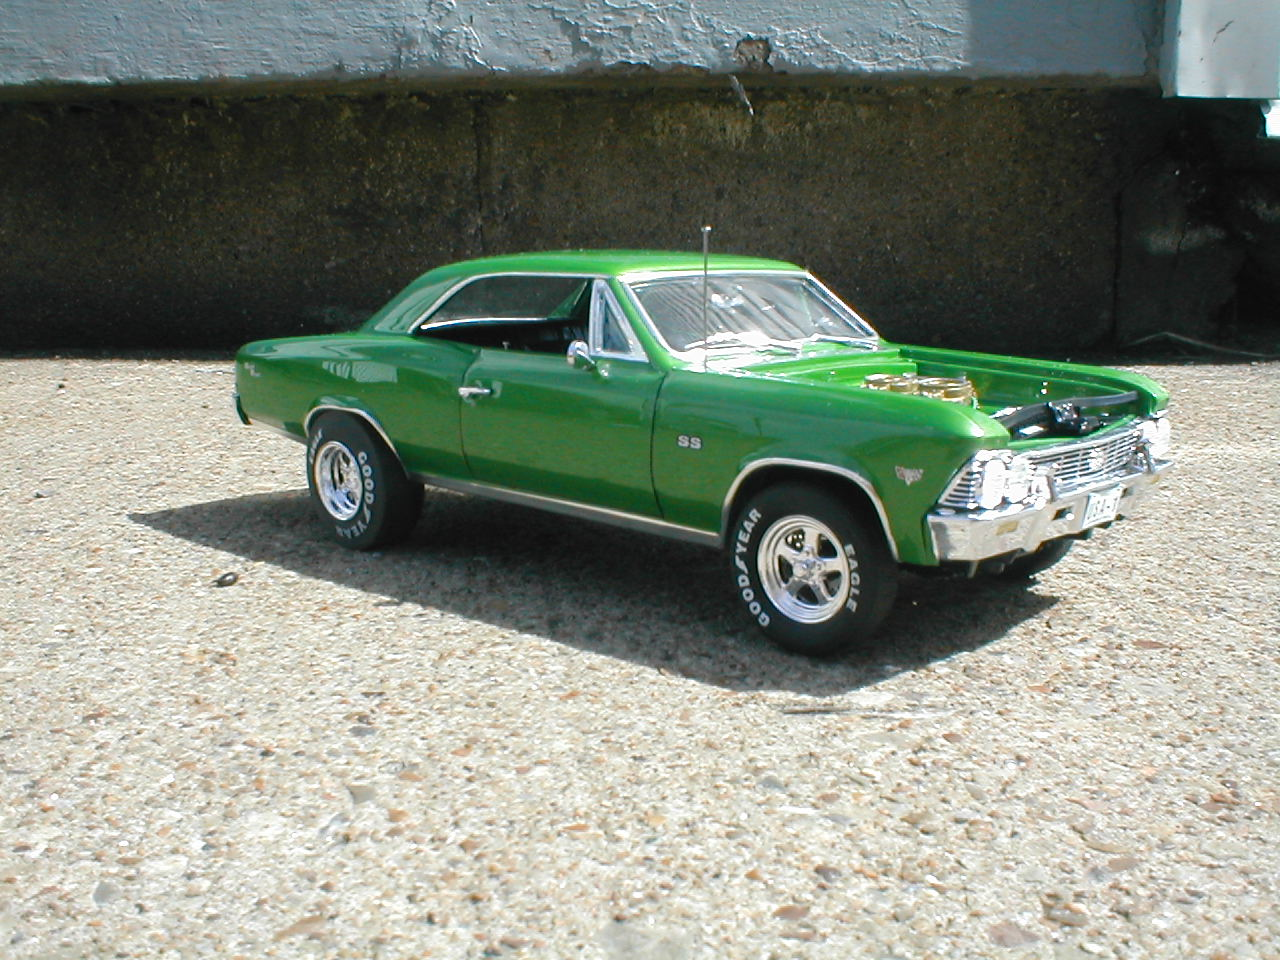 67 Chevelle Parts For Sale Craigslist | Autos Post